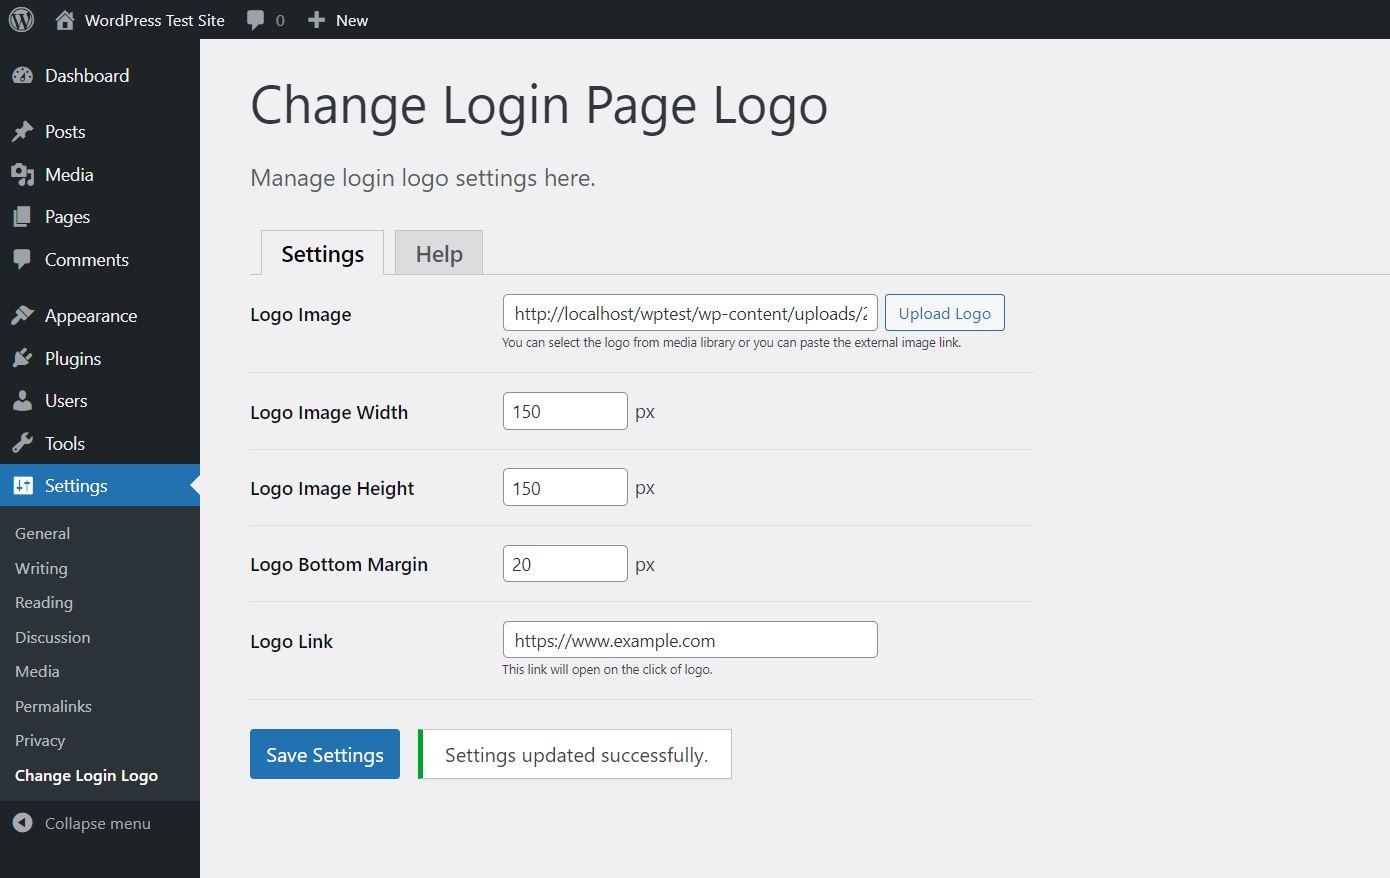 <strong>Settings Page</strong> - Here you can manage login logo settings.